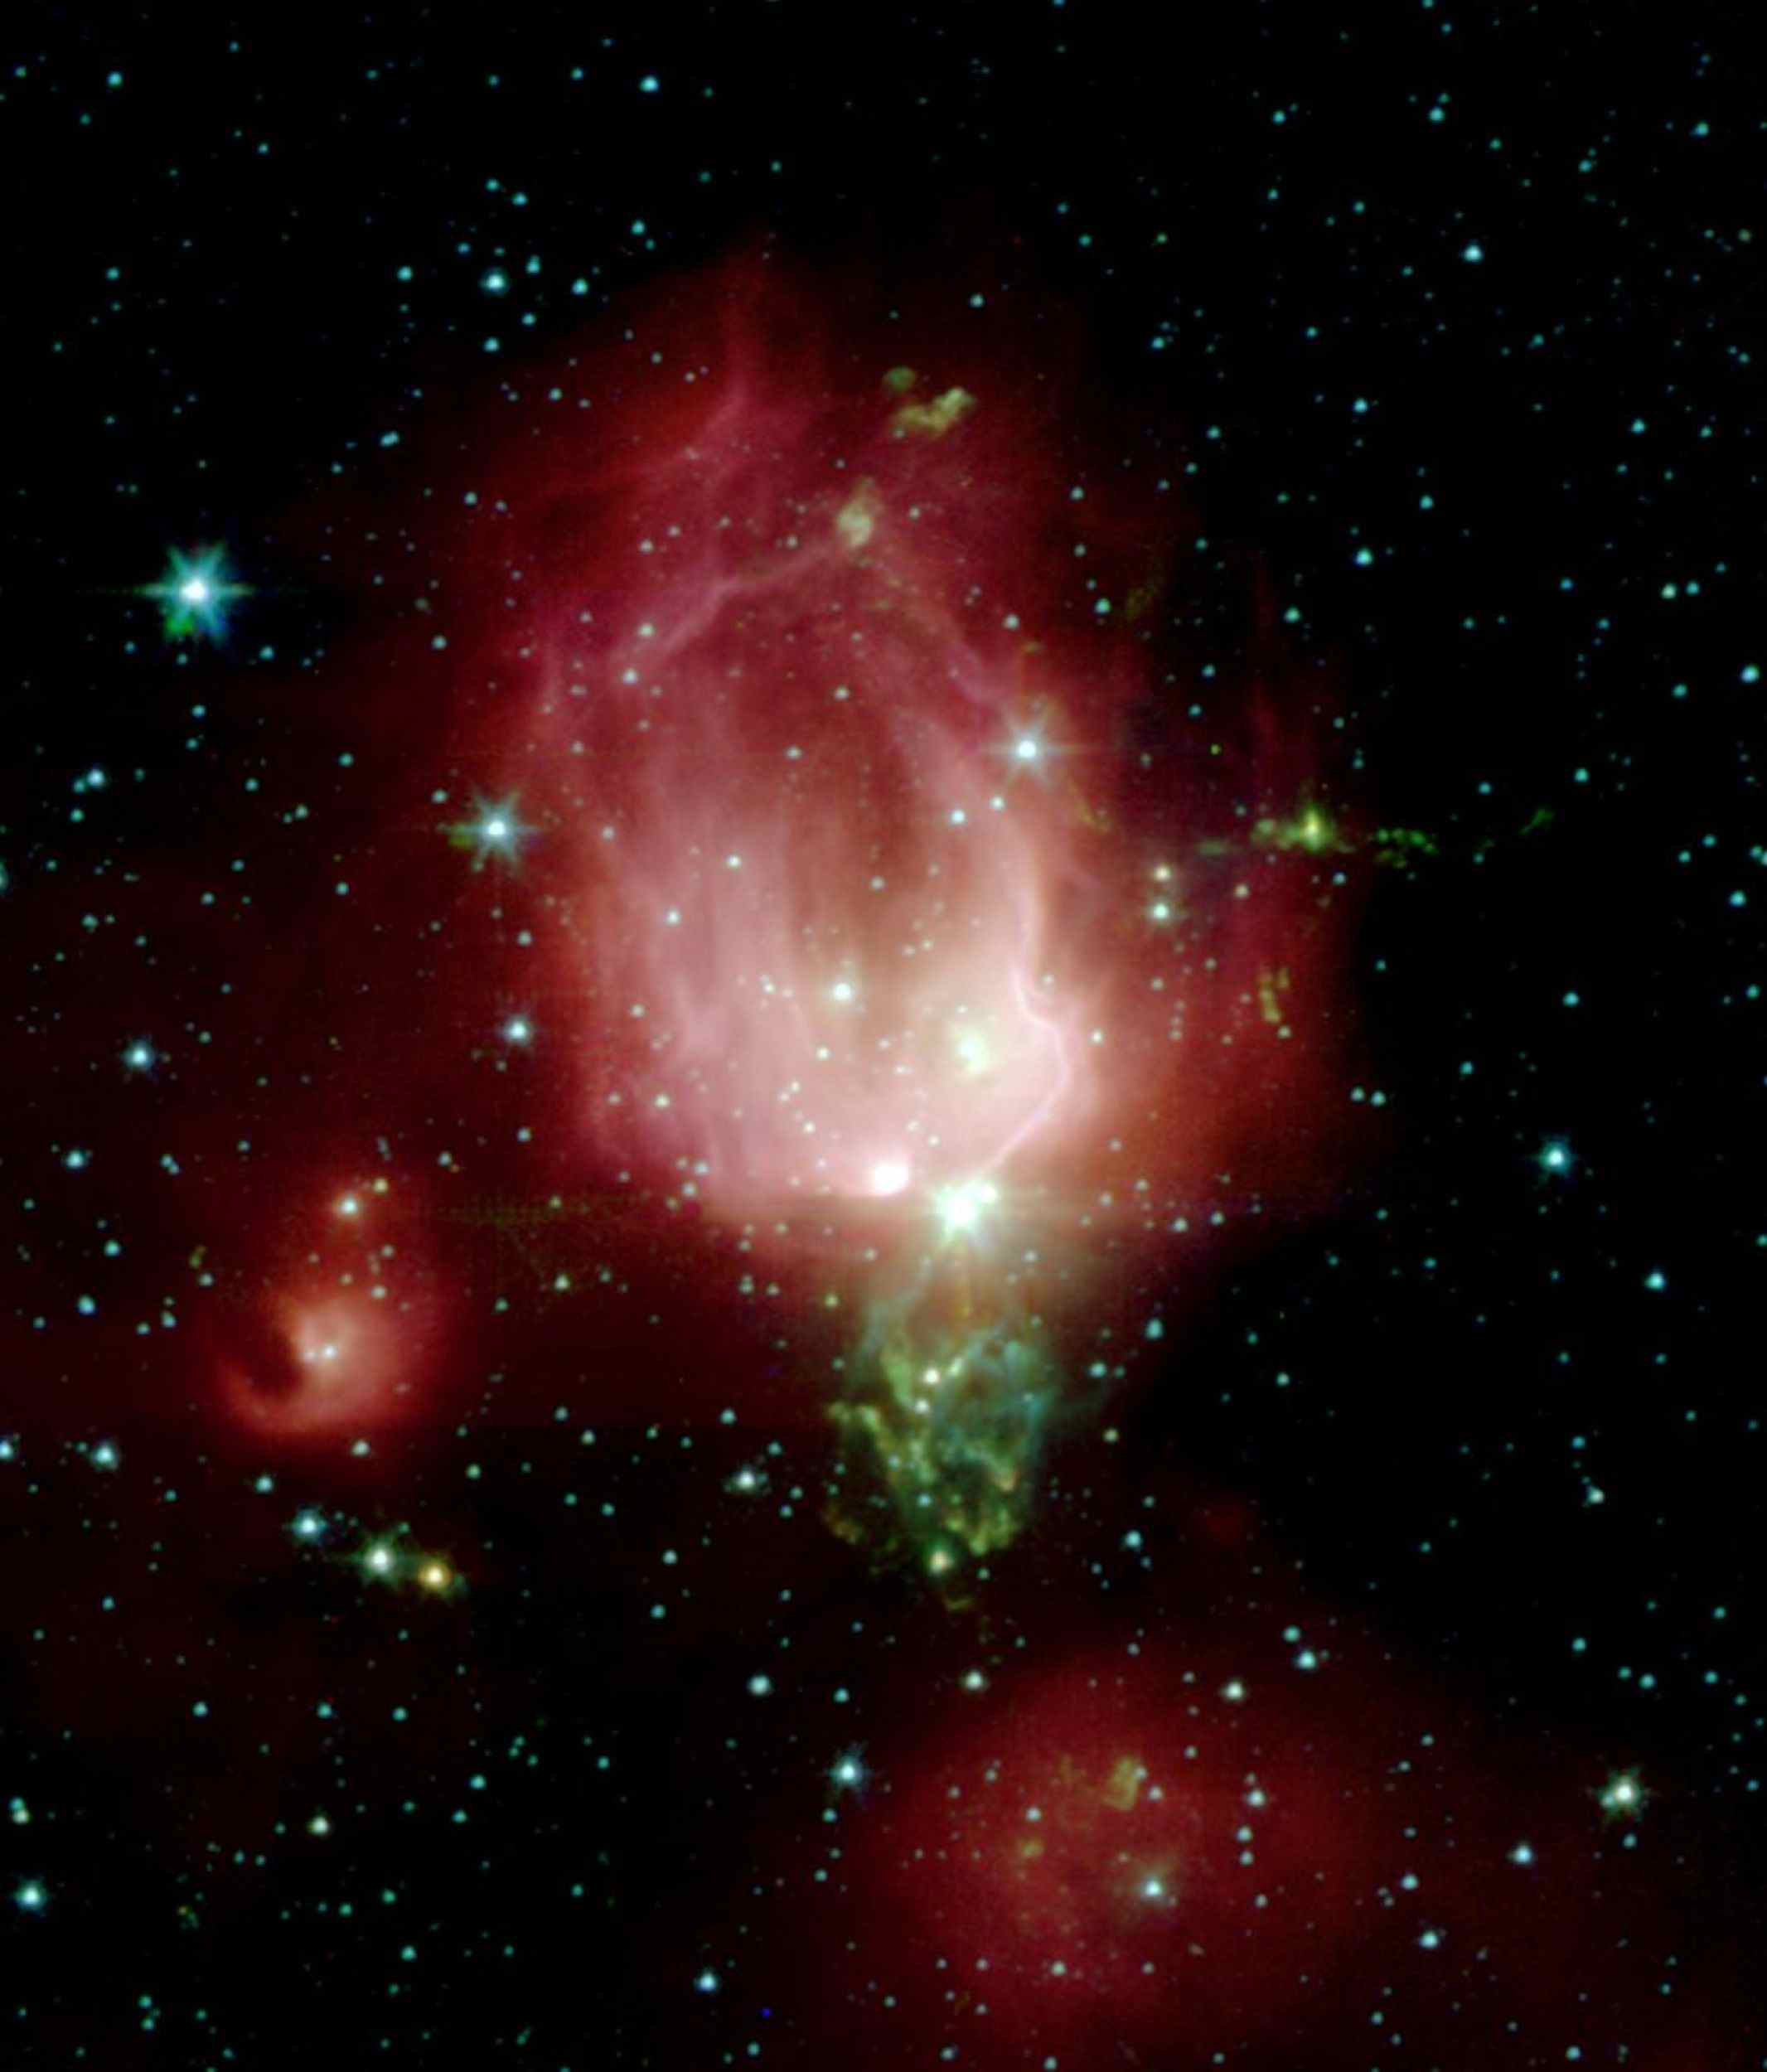 A cluster of newborn stars herald their birth in this interstellar Valentine's Day commemorative picture obtained with NASA's Spitzer Space Telescope. These bright young stars are found in a rosebud-shaped (and rose-colored) nebulosity known as NGC 7129.